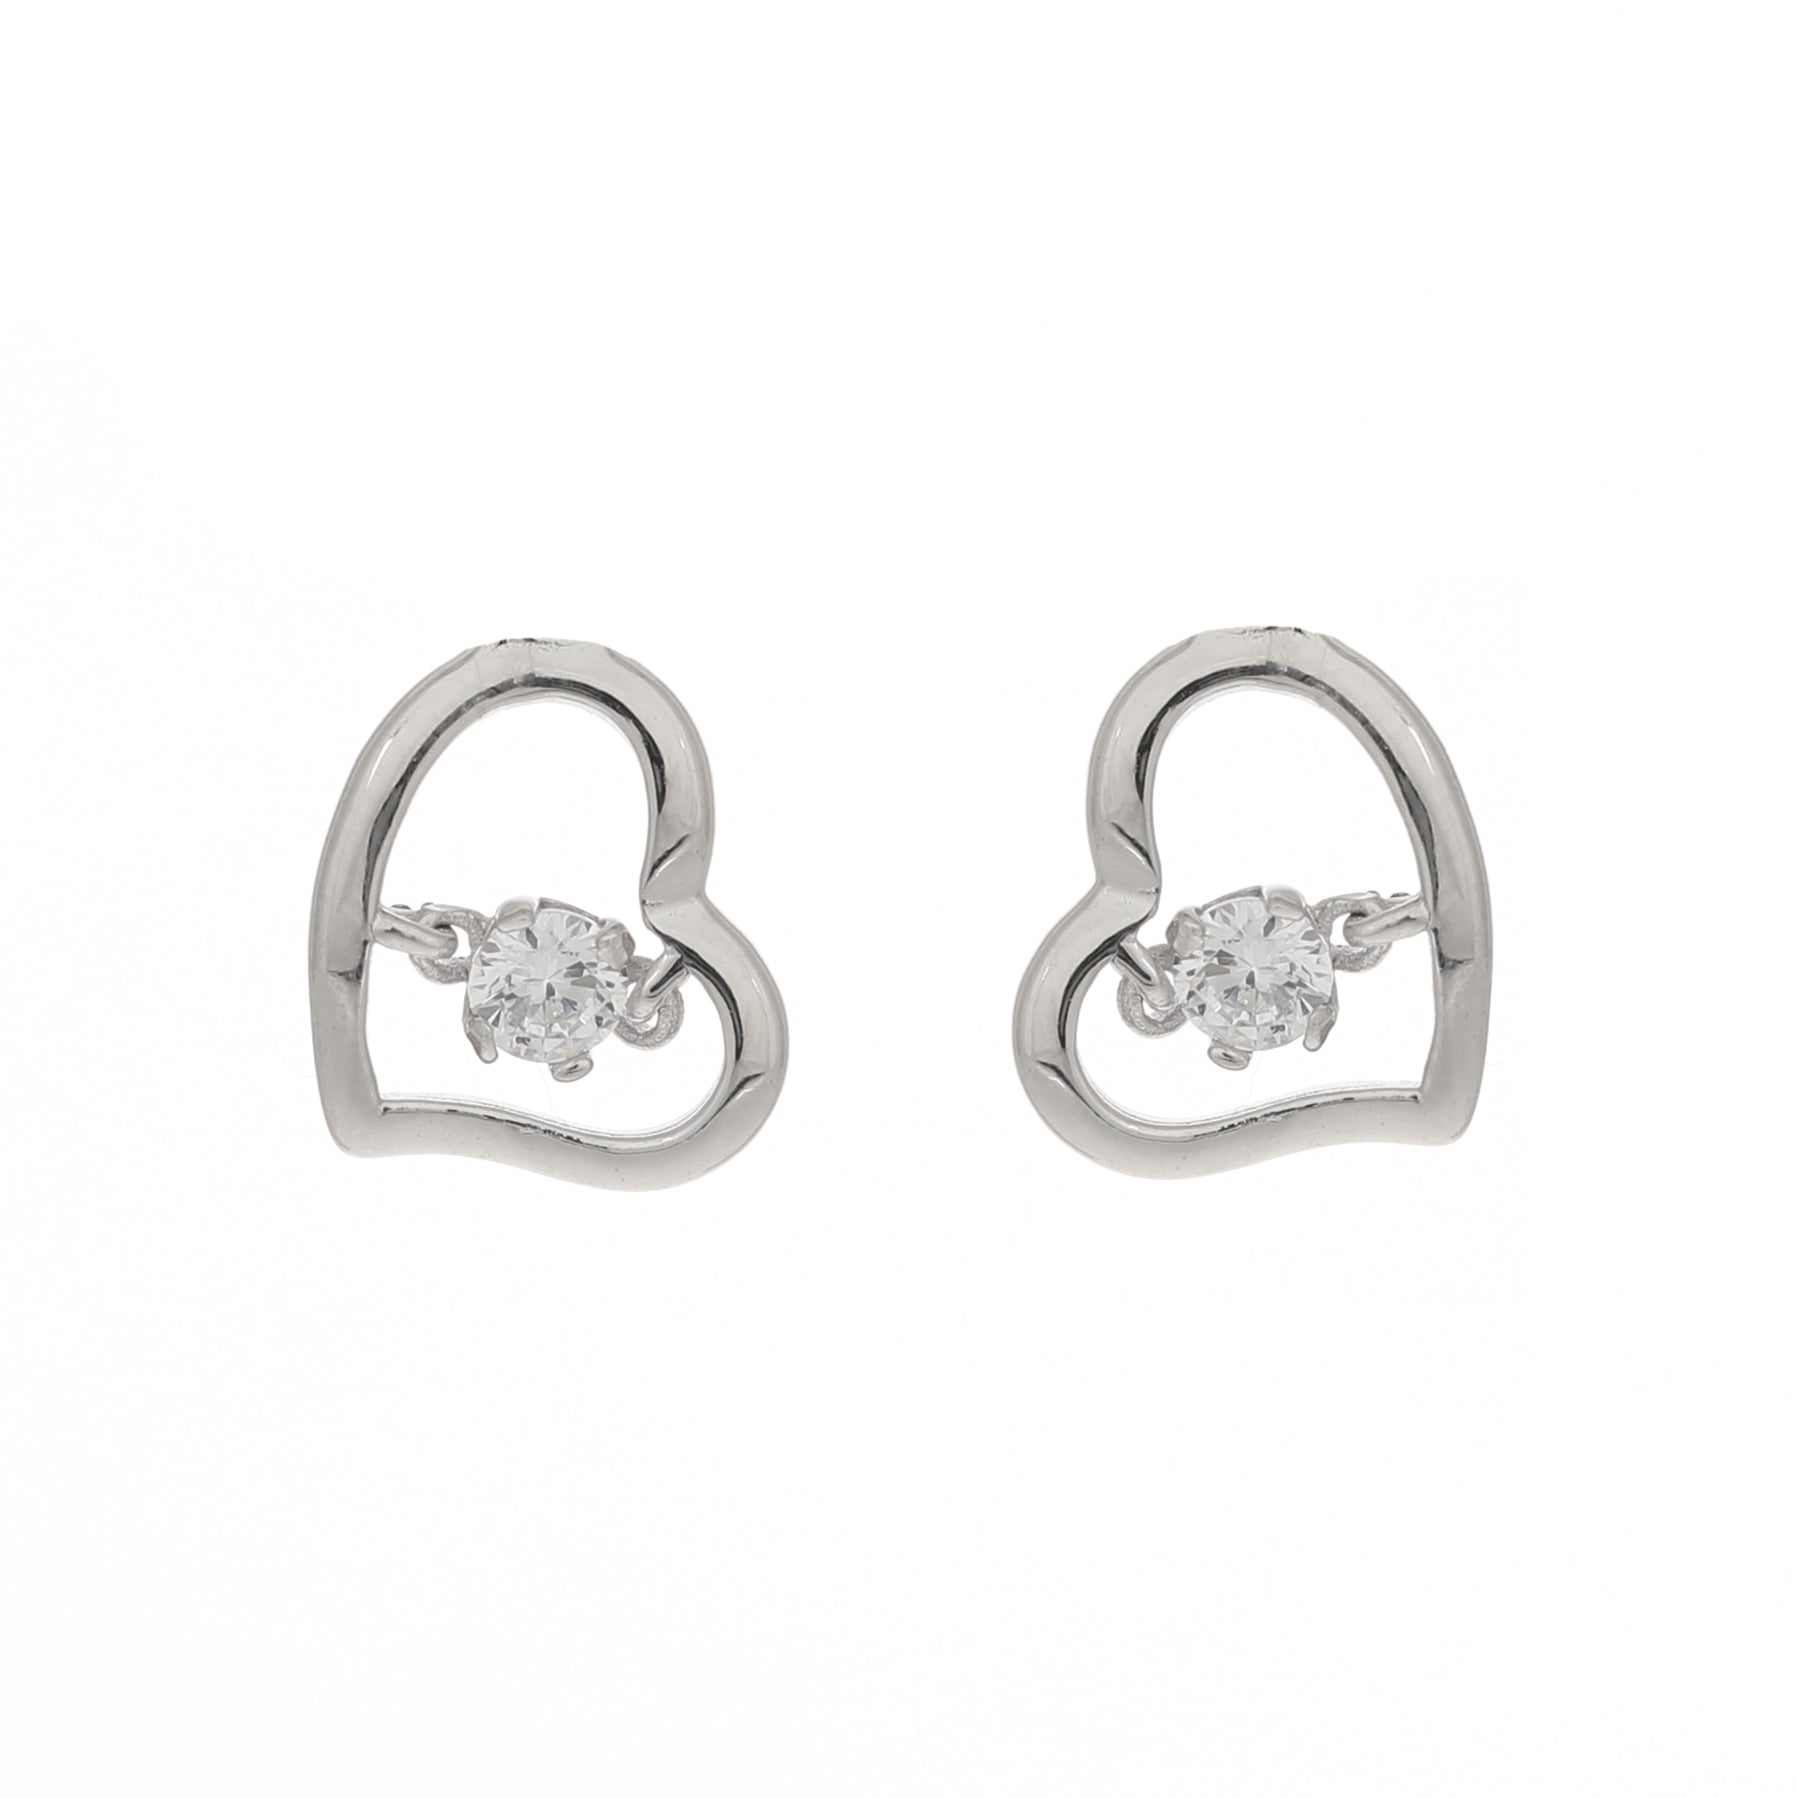 Sparkly-open heart earrings